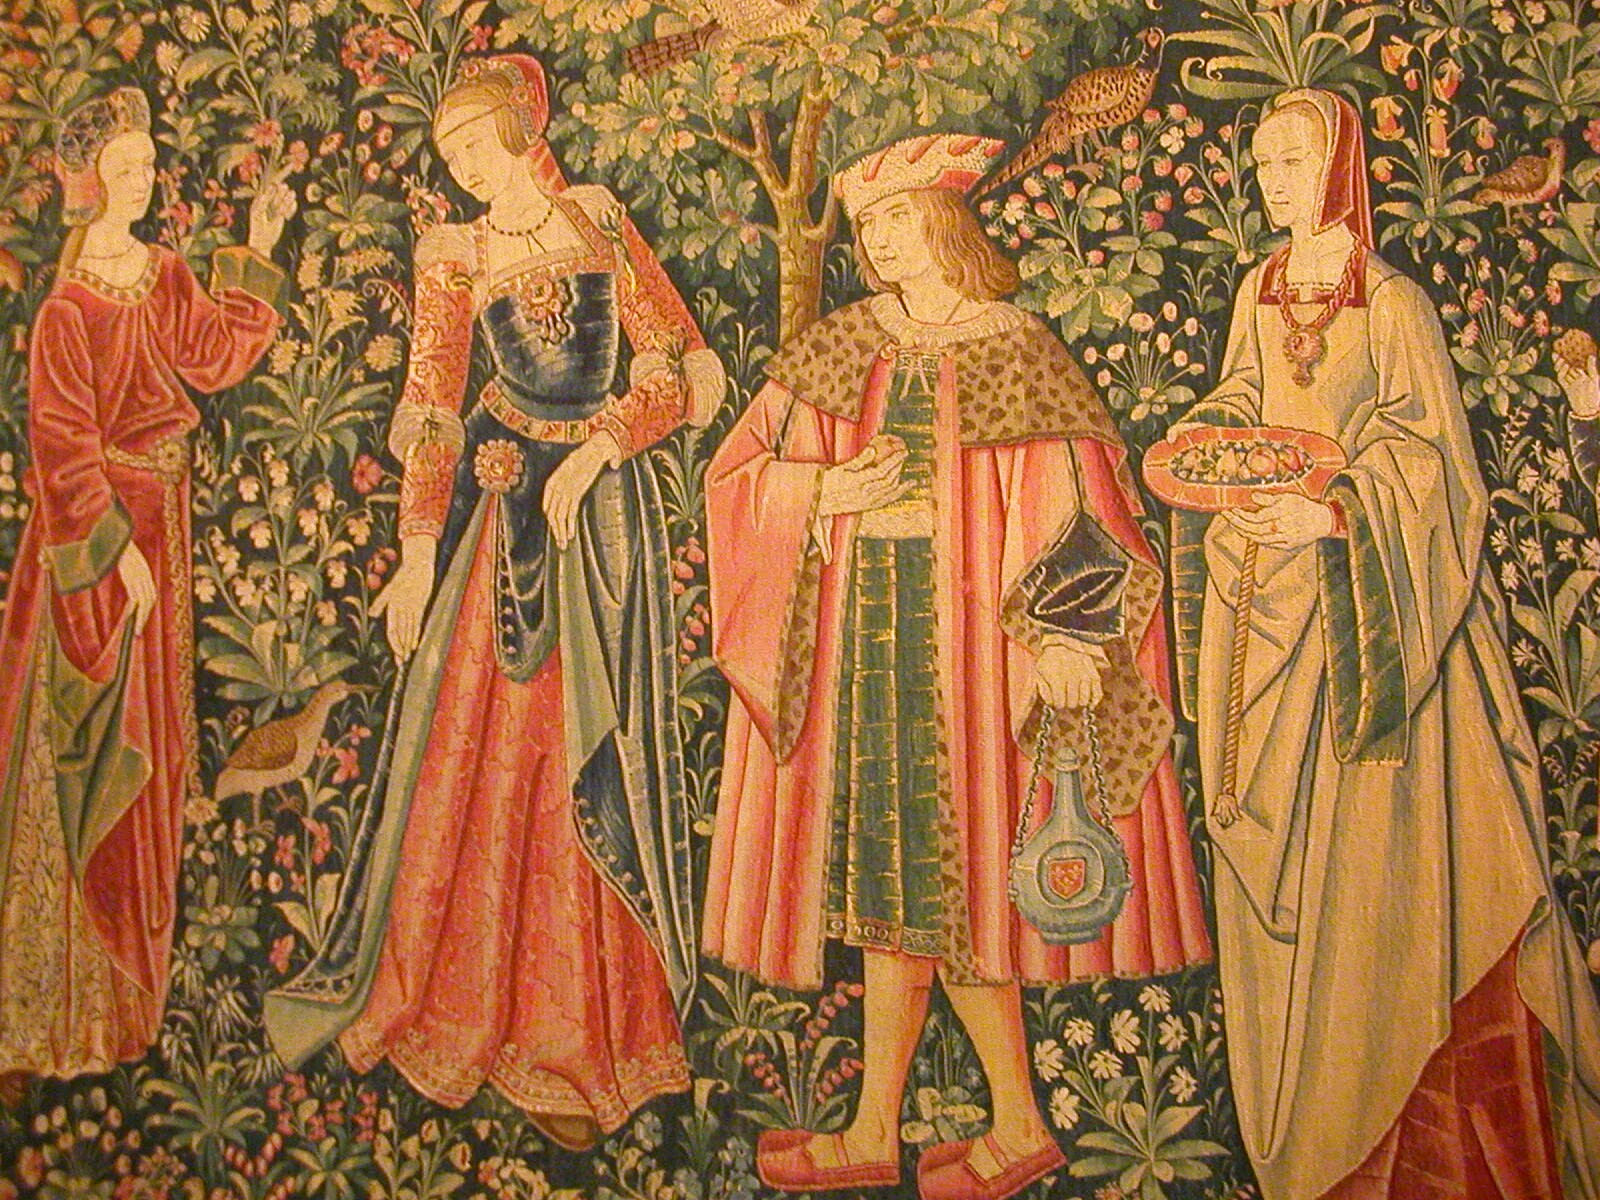 1500 (approx) - Tapestry of Court life - the promenade - at Cluny museum